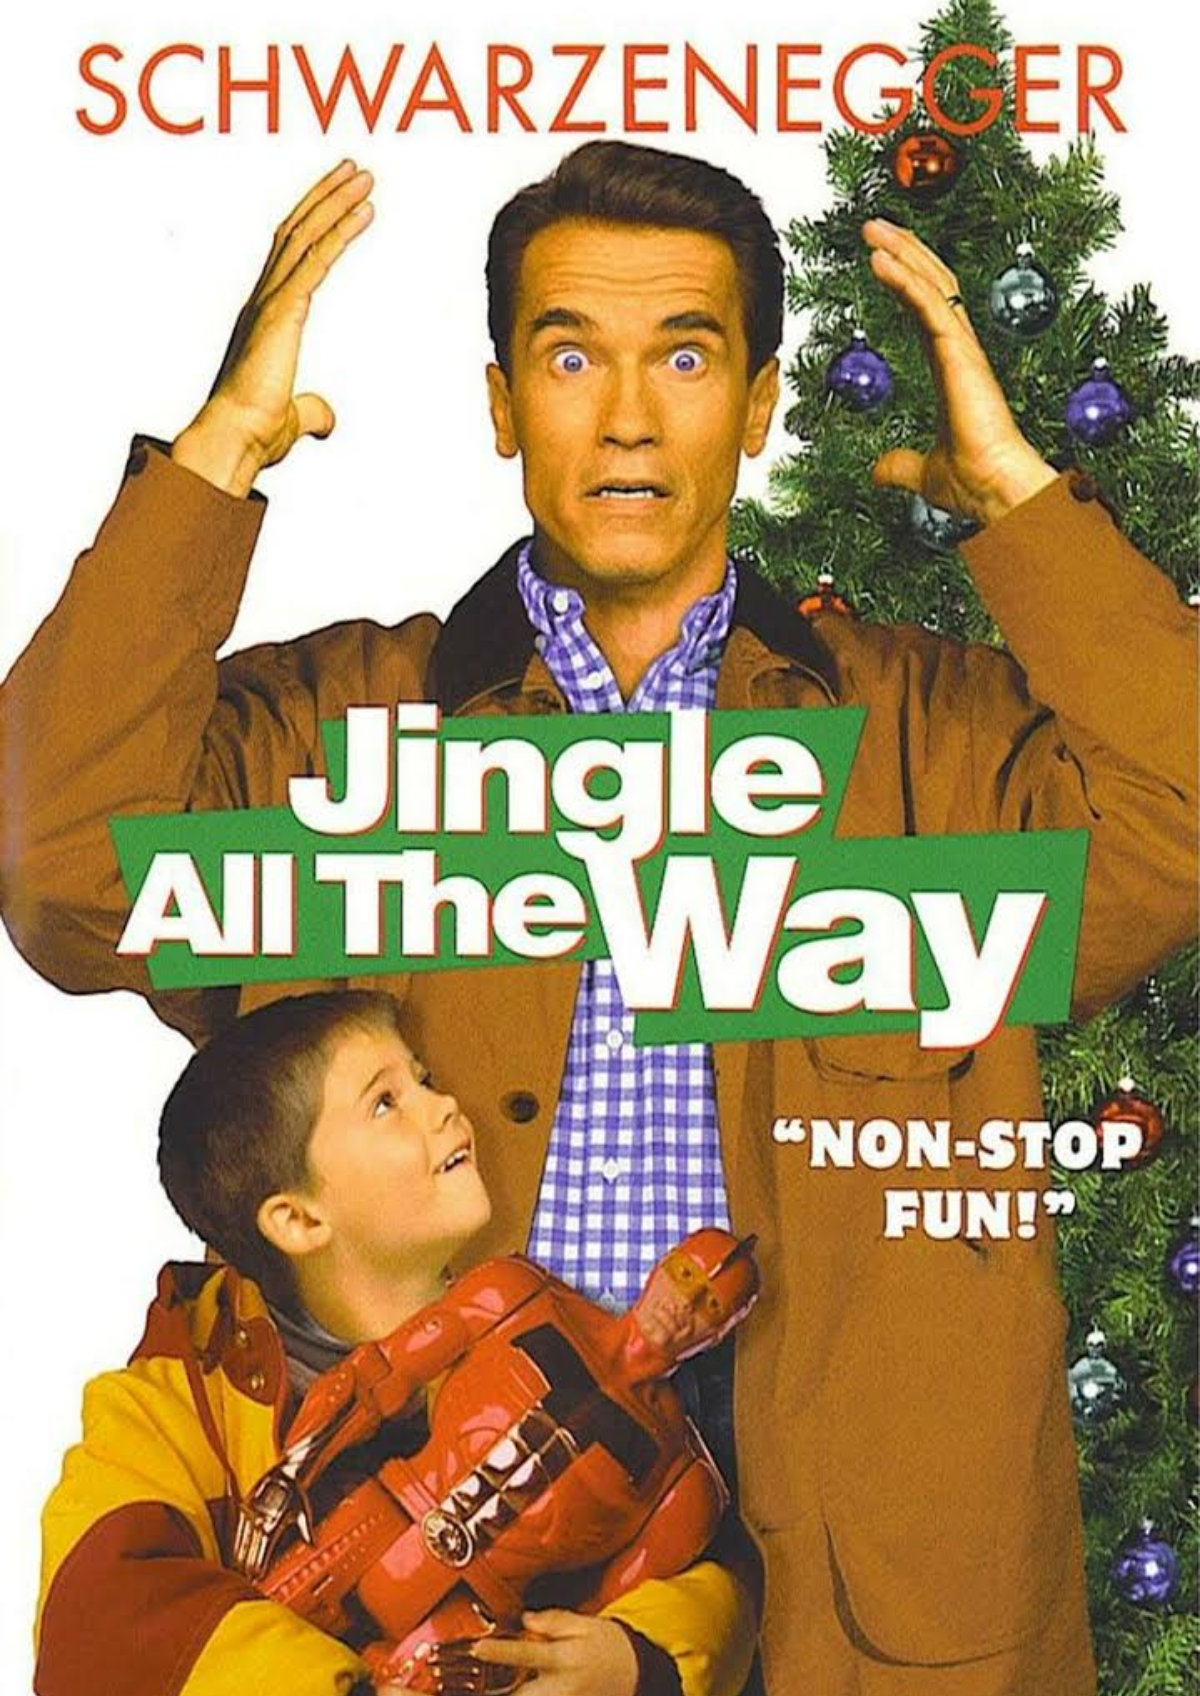 'Jingle All The Way' movie poster